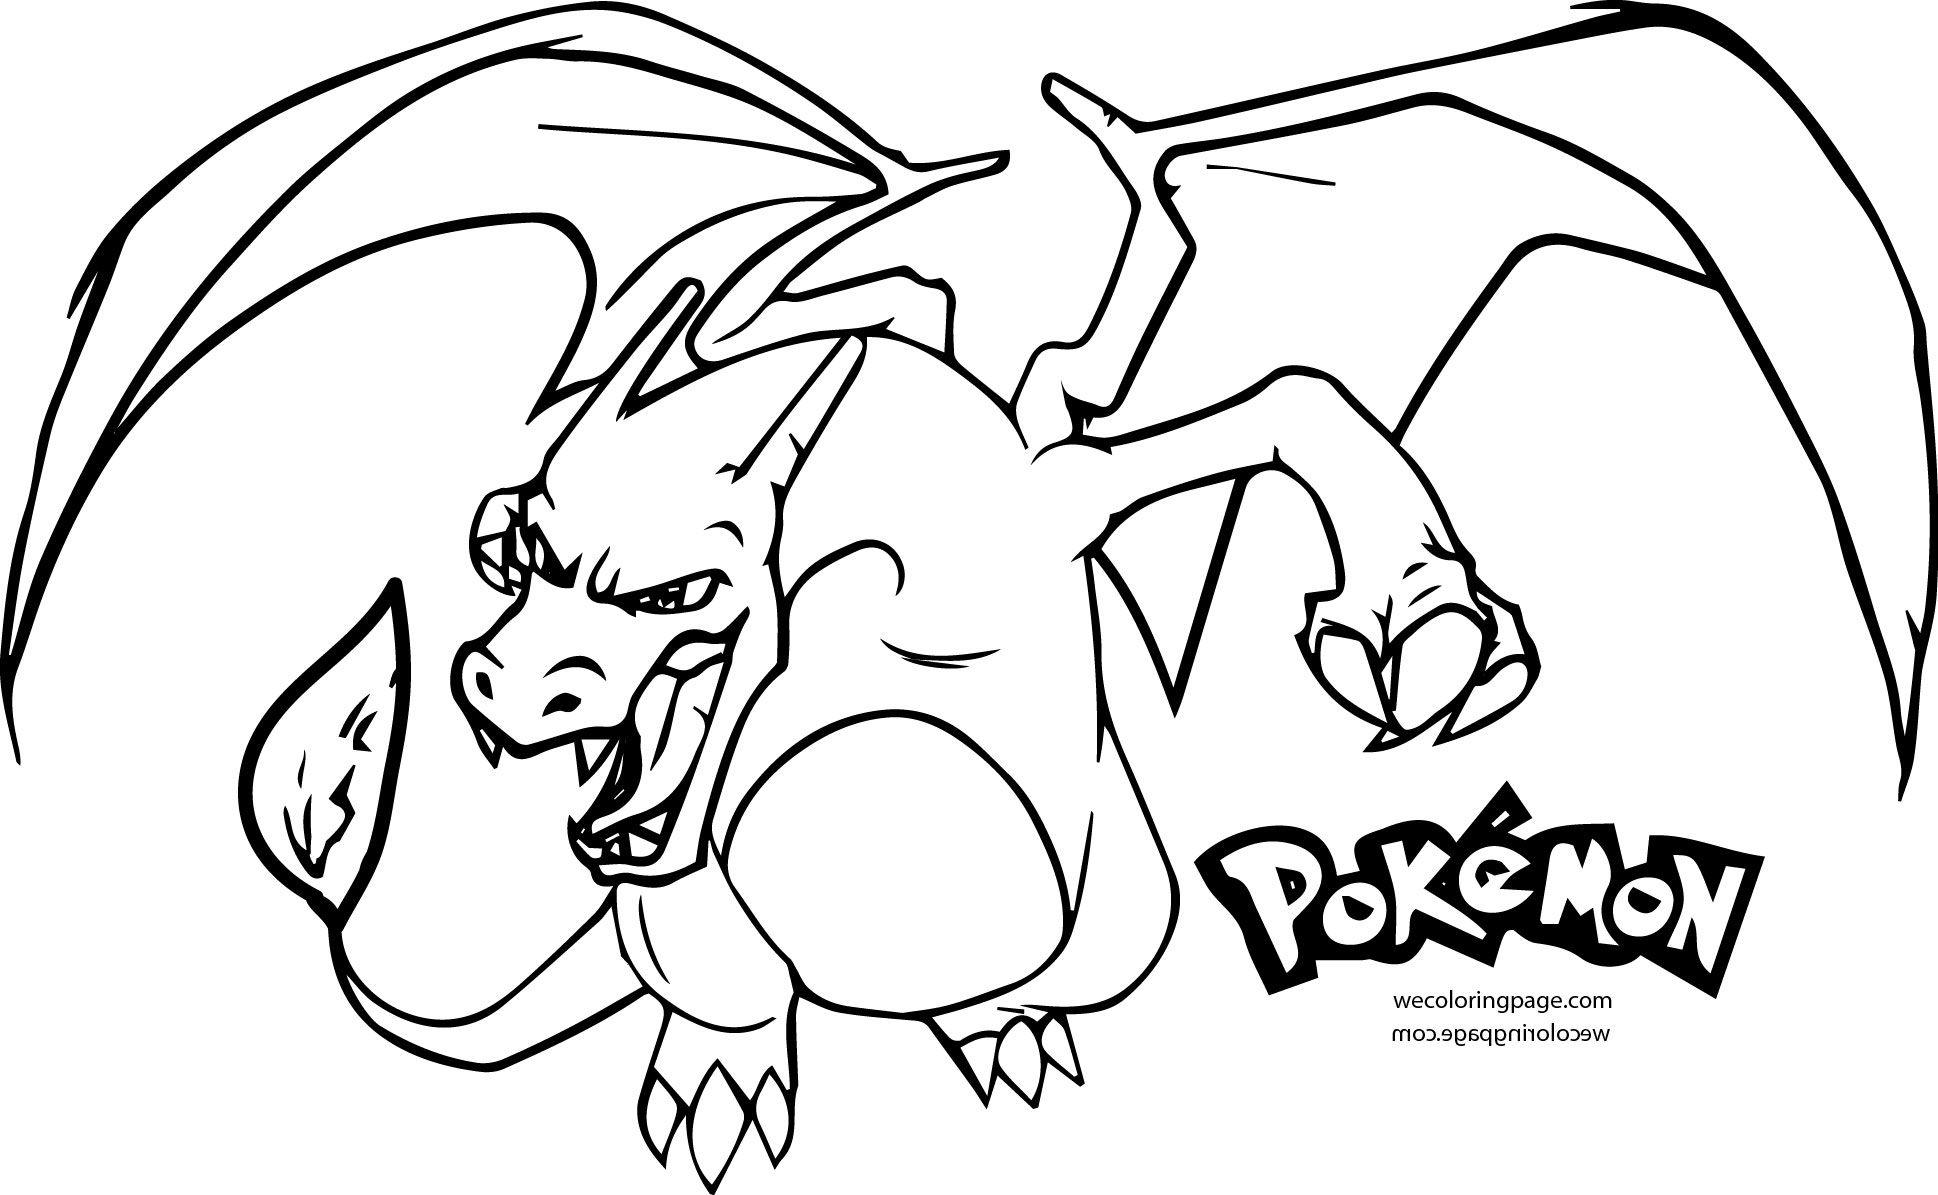 charizard y coloring page mega charizard x brush outline by ryuujashin on deviantart charizard y page coloring 1 1